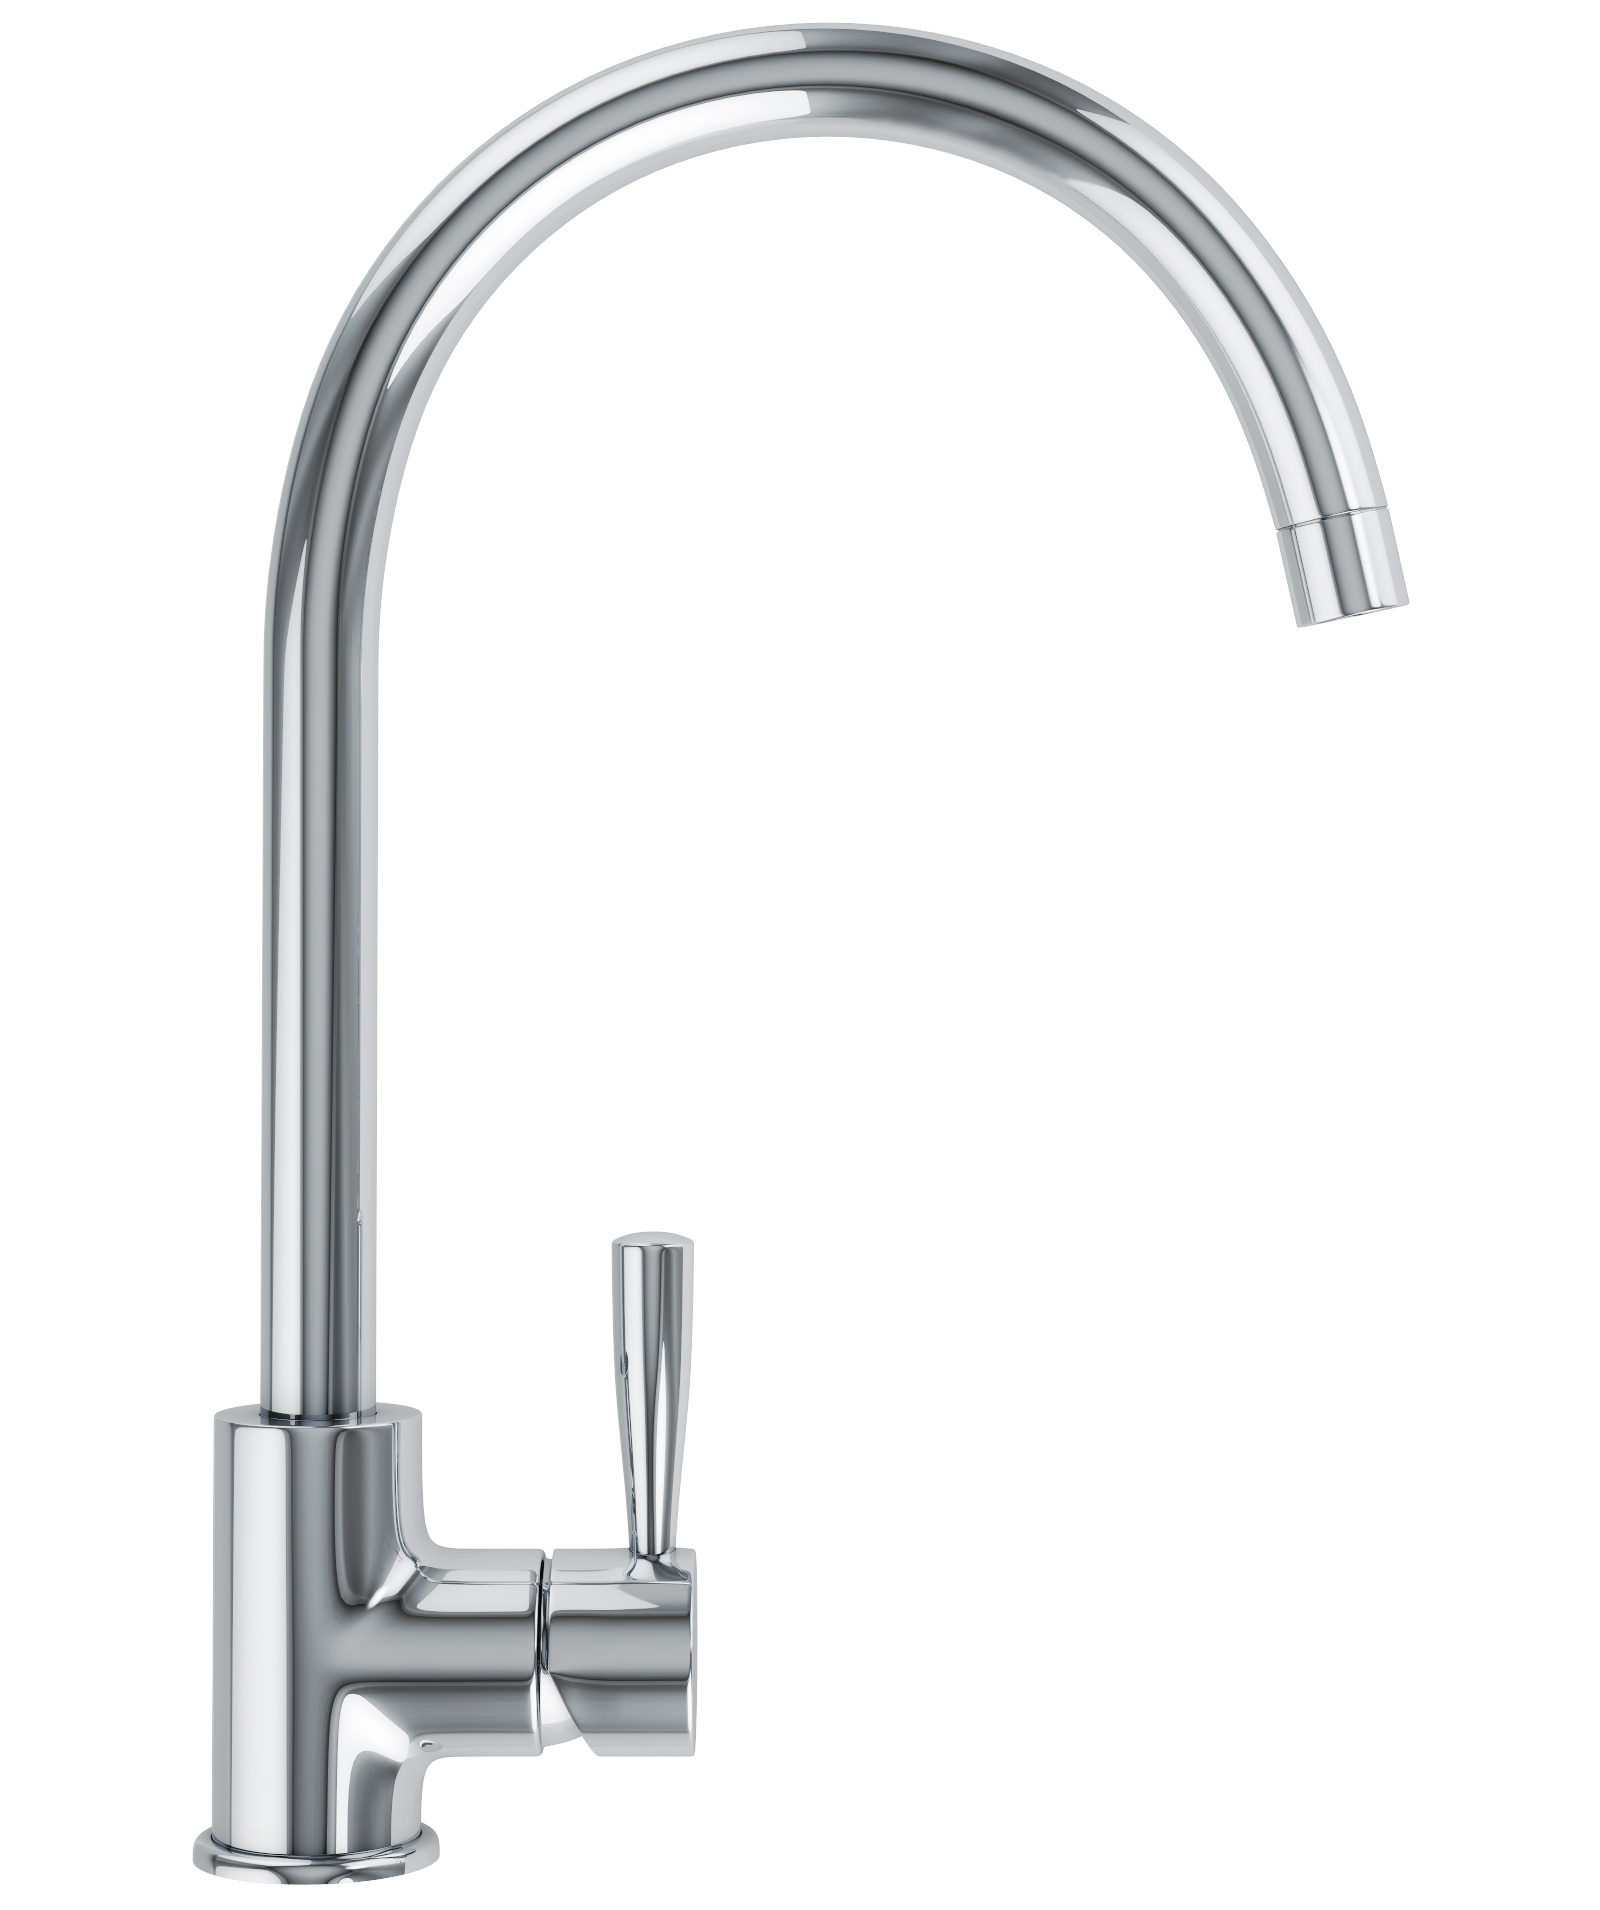 ... taps kitchen mixer taps franke fuji kitchen sink mixer tap chrome